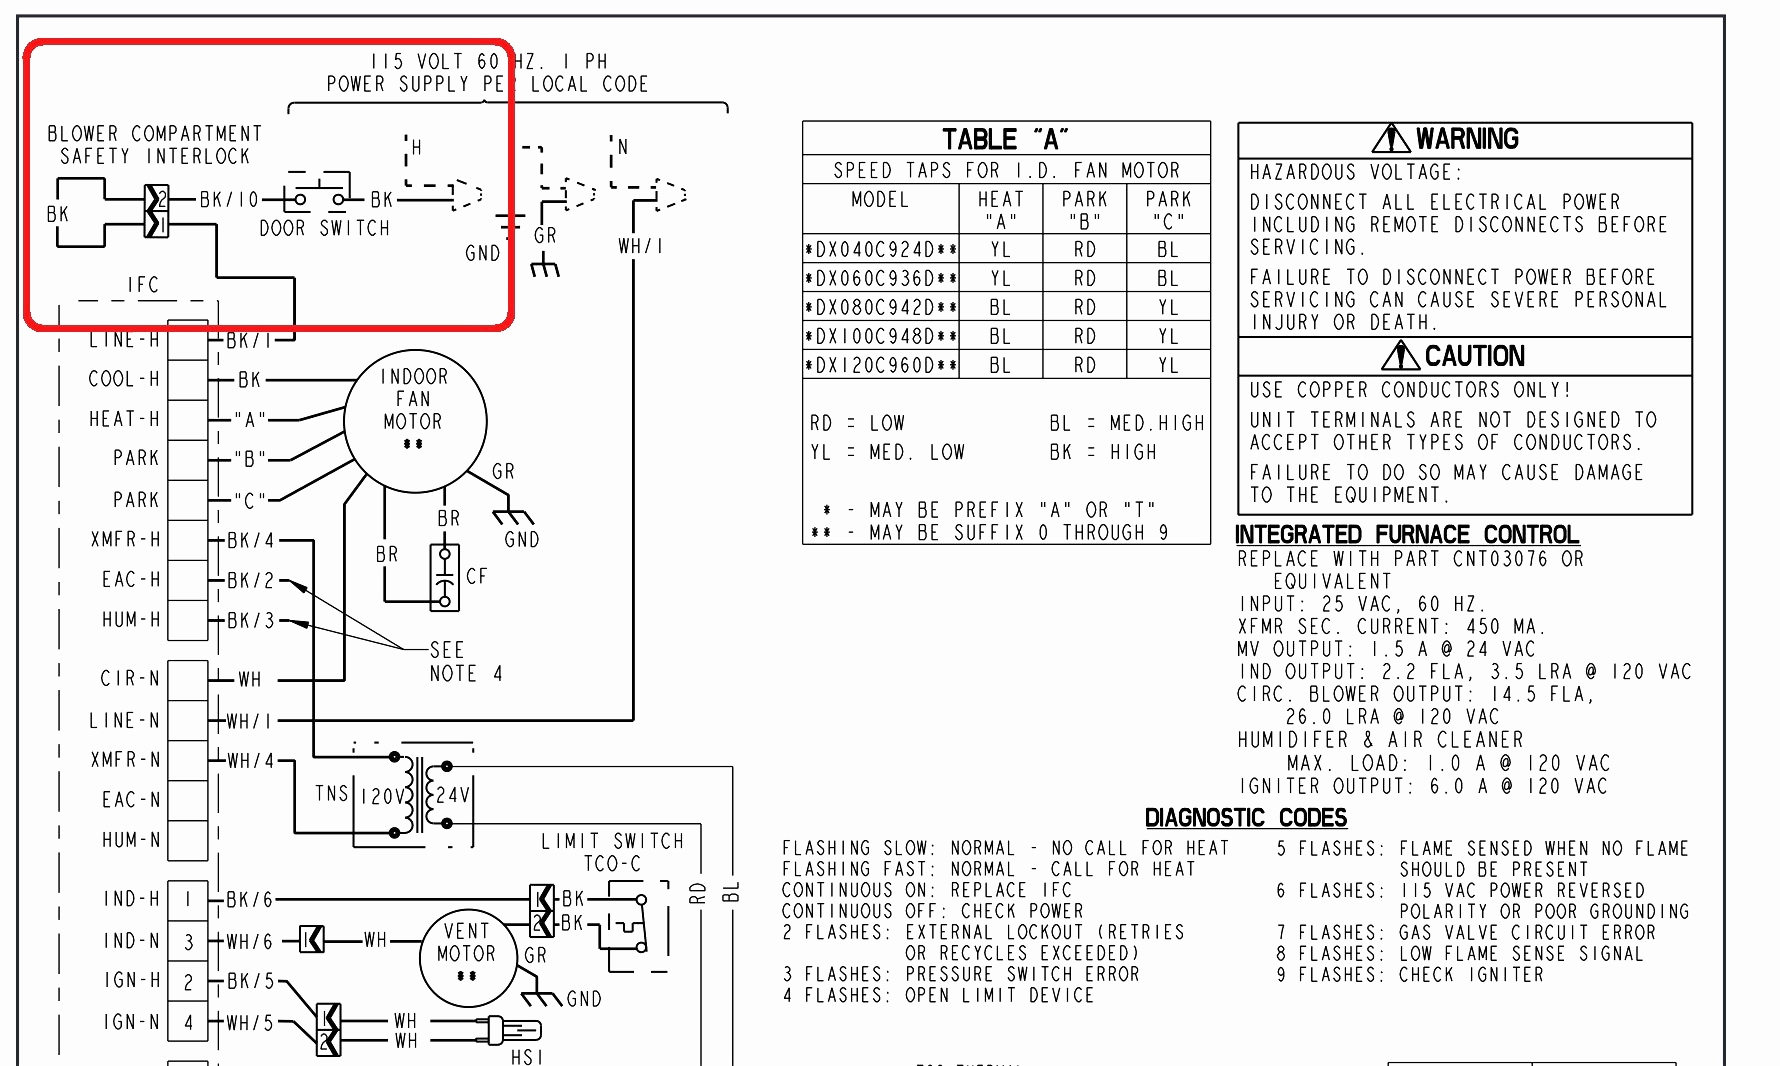 american standard furnace wiring diagram Collection-Full Size of Wiring Diagram American Standard Furnace Wiring Diagram Luxury American Standard Wiring Diagram 19-o